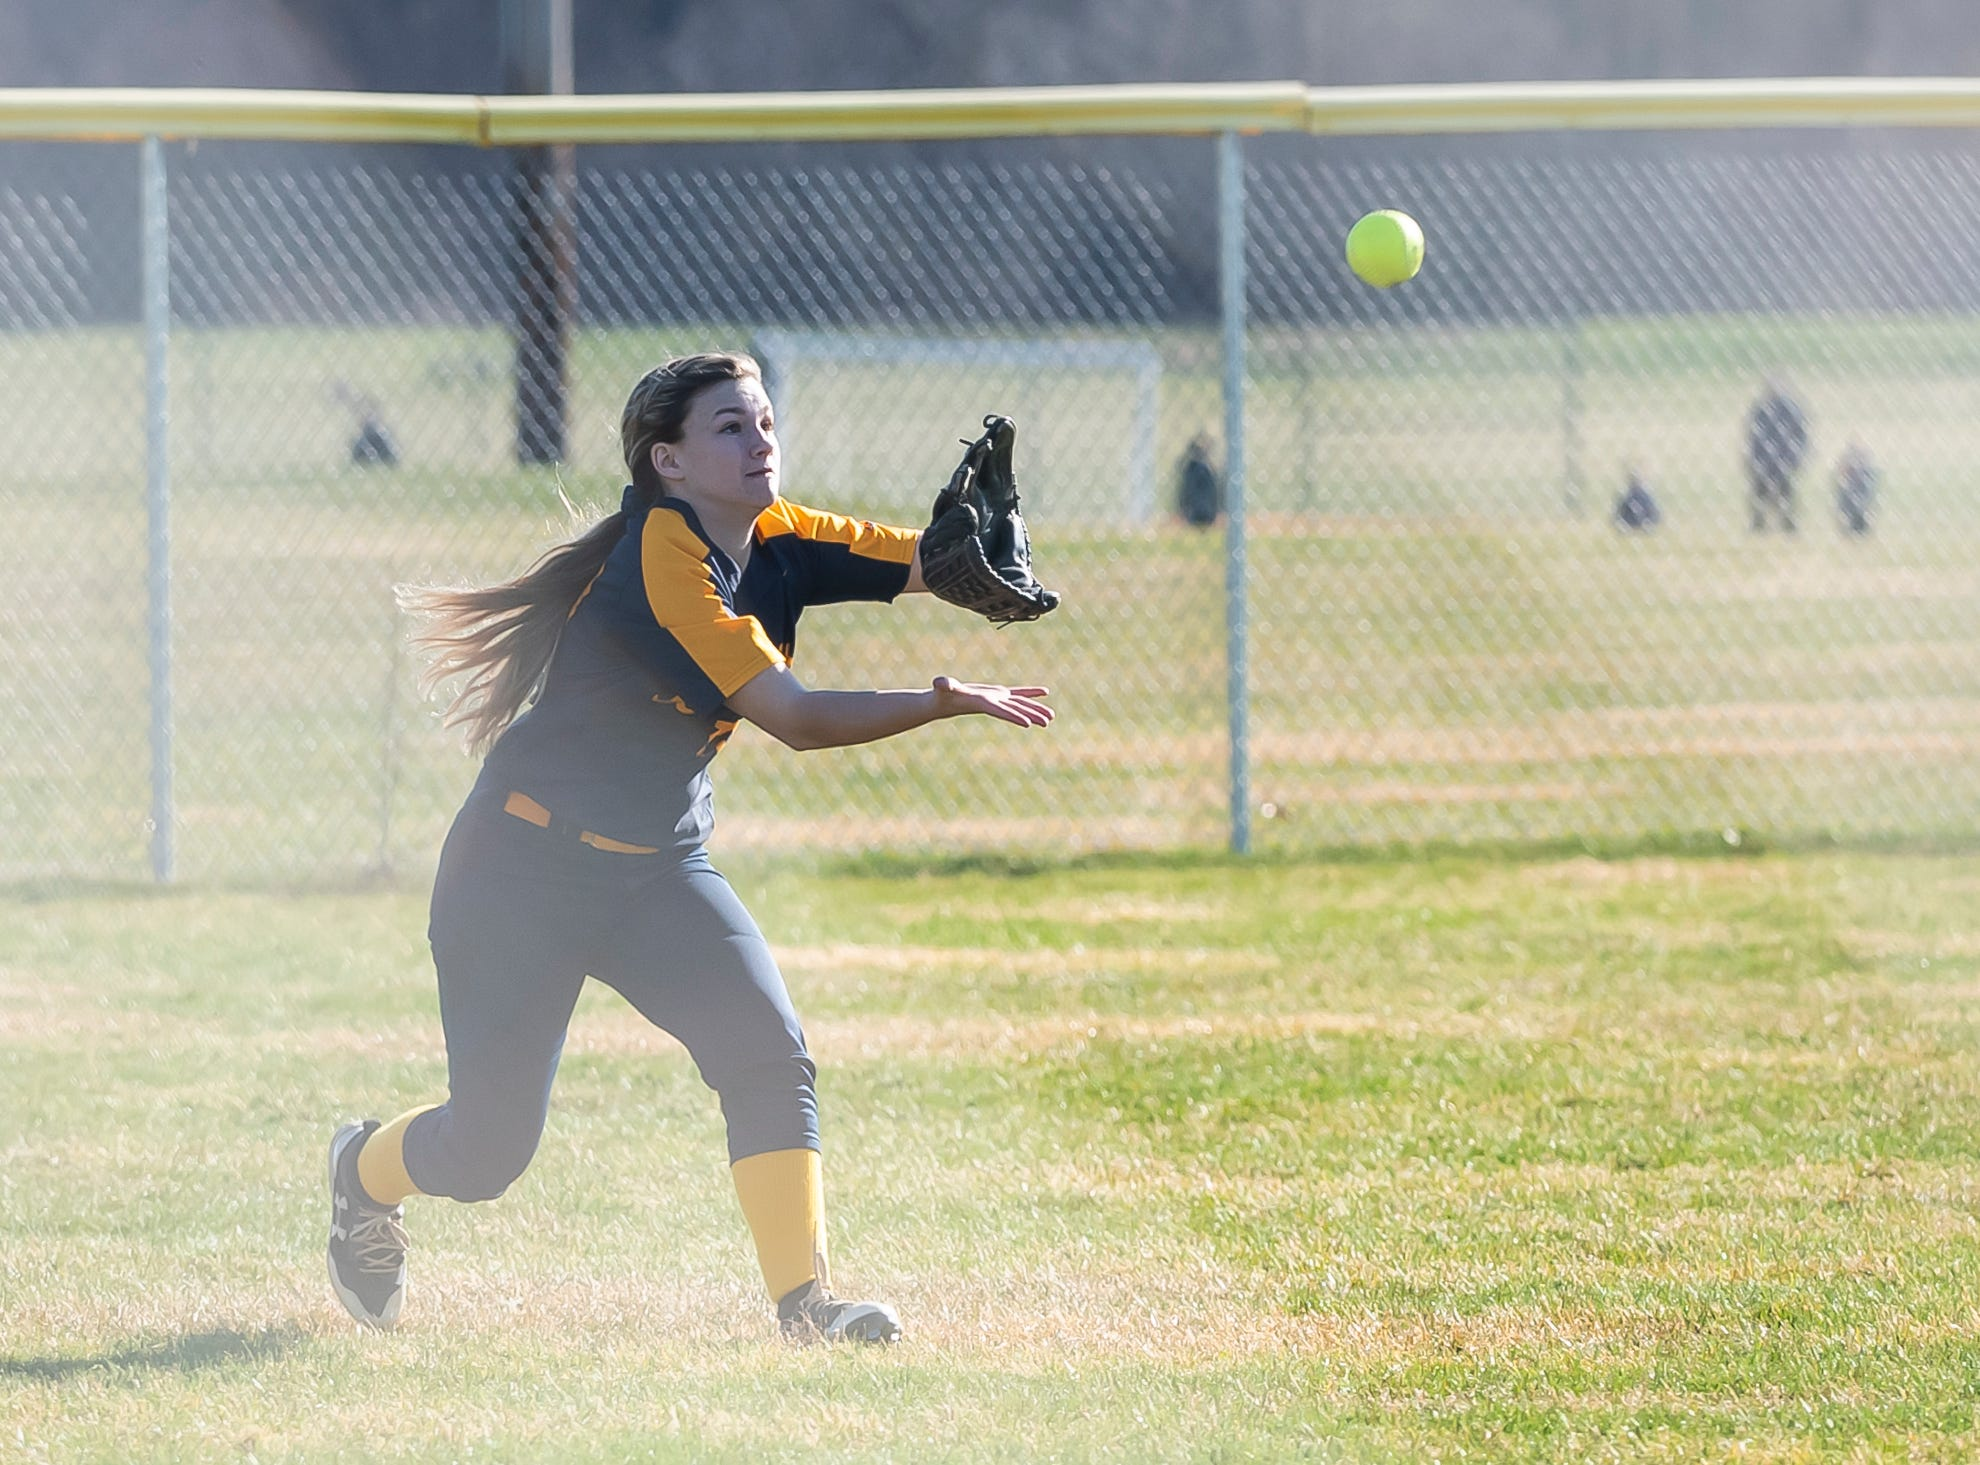 Littlestown's Carli Thayer catches a fly ball during a YAIAA softball game against Gettysburg on Monday, April 1, 2019. The Bolts won 10-4.